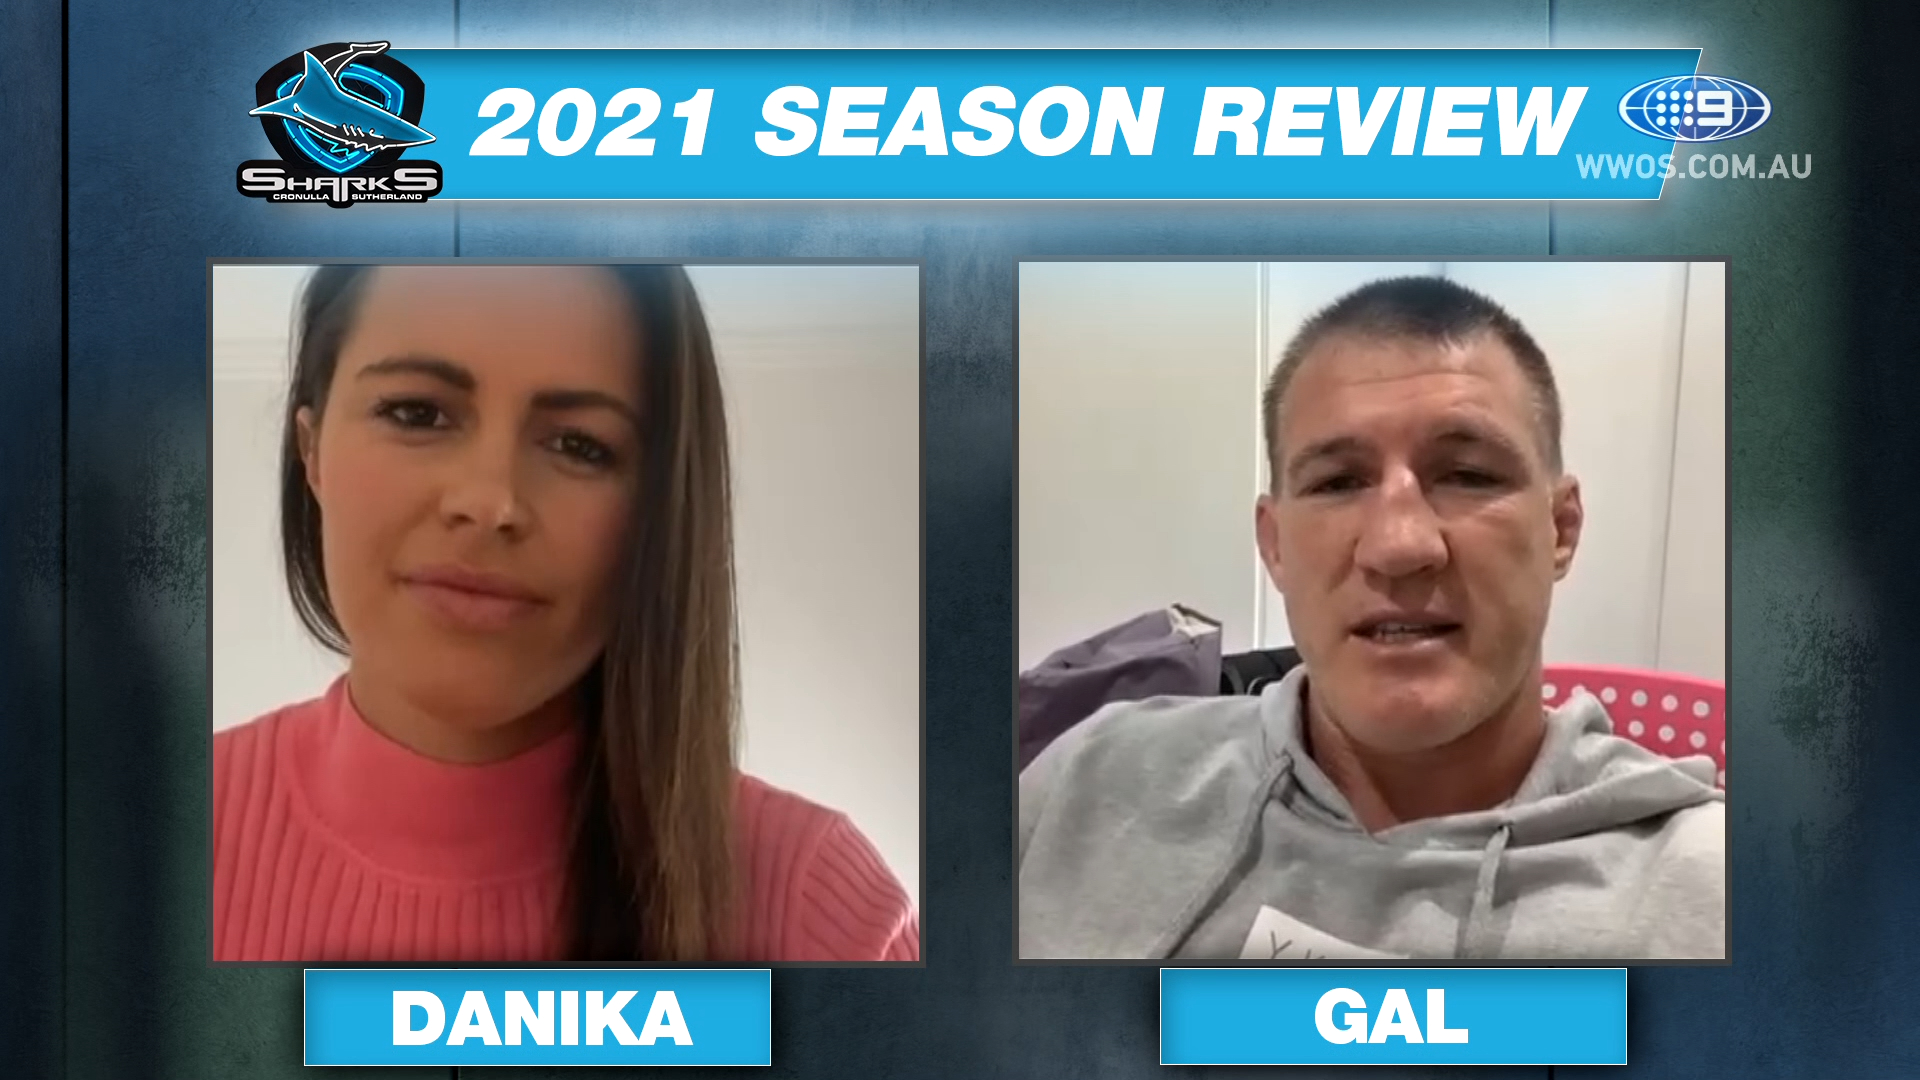 2021 Team Reviews: The Sharks up and down season